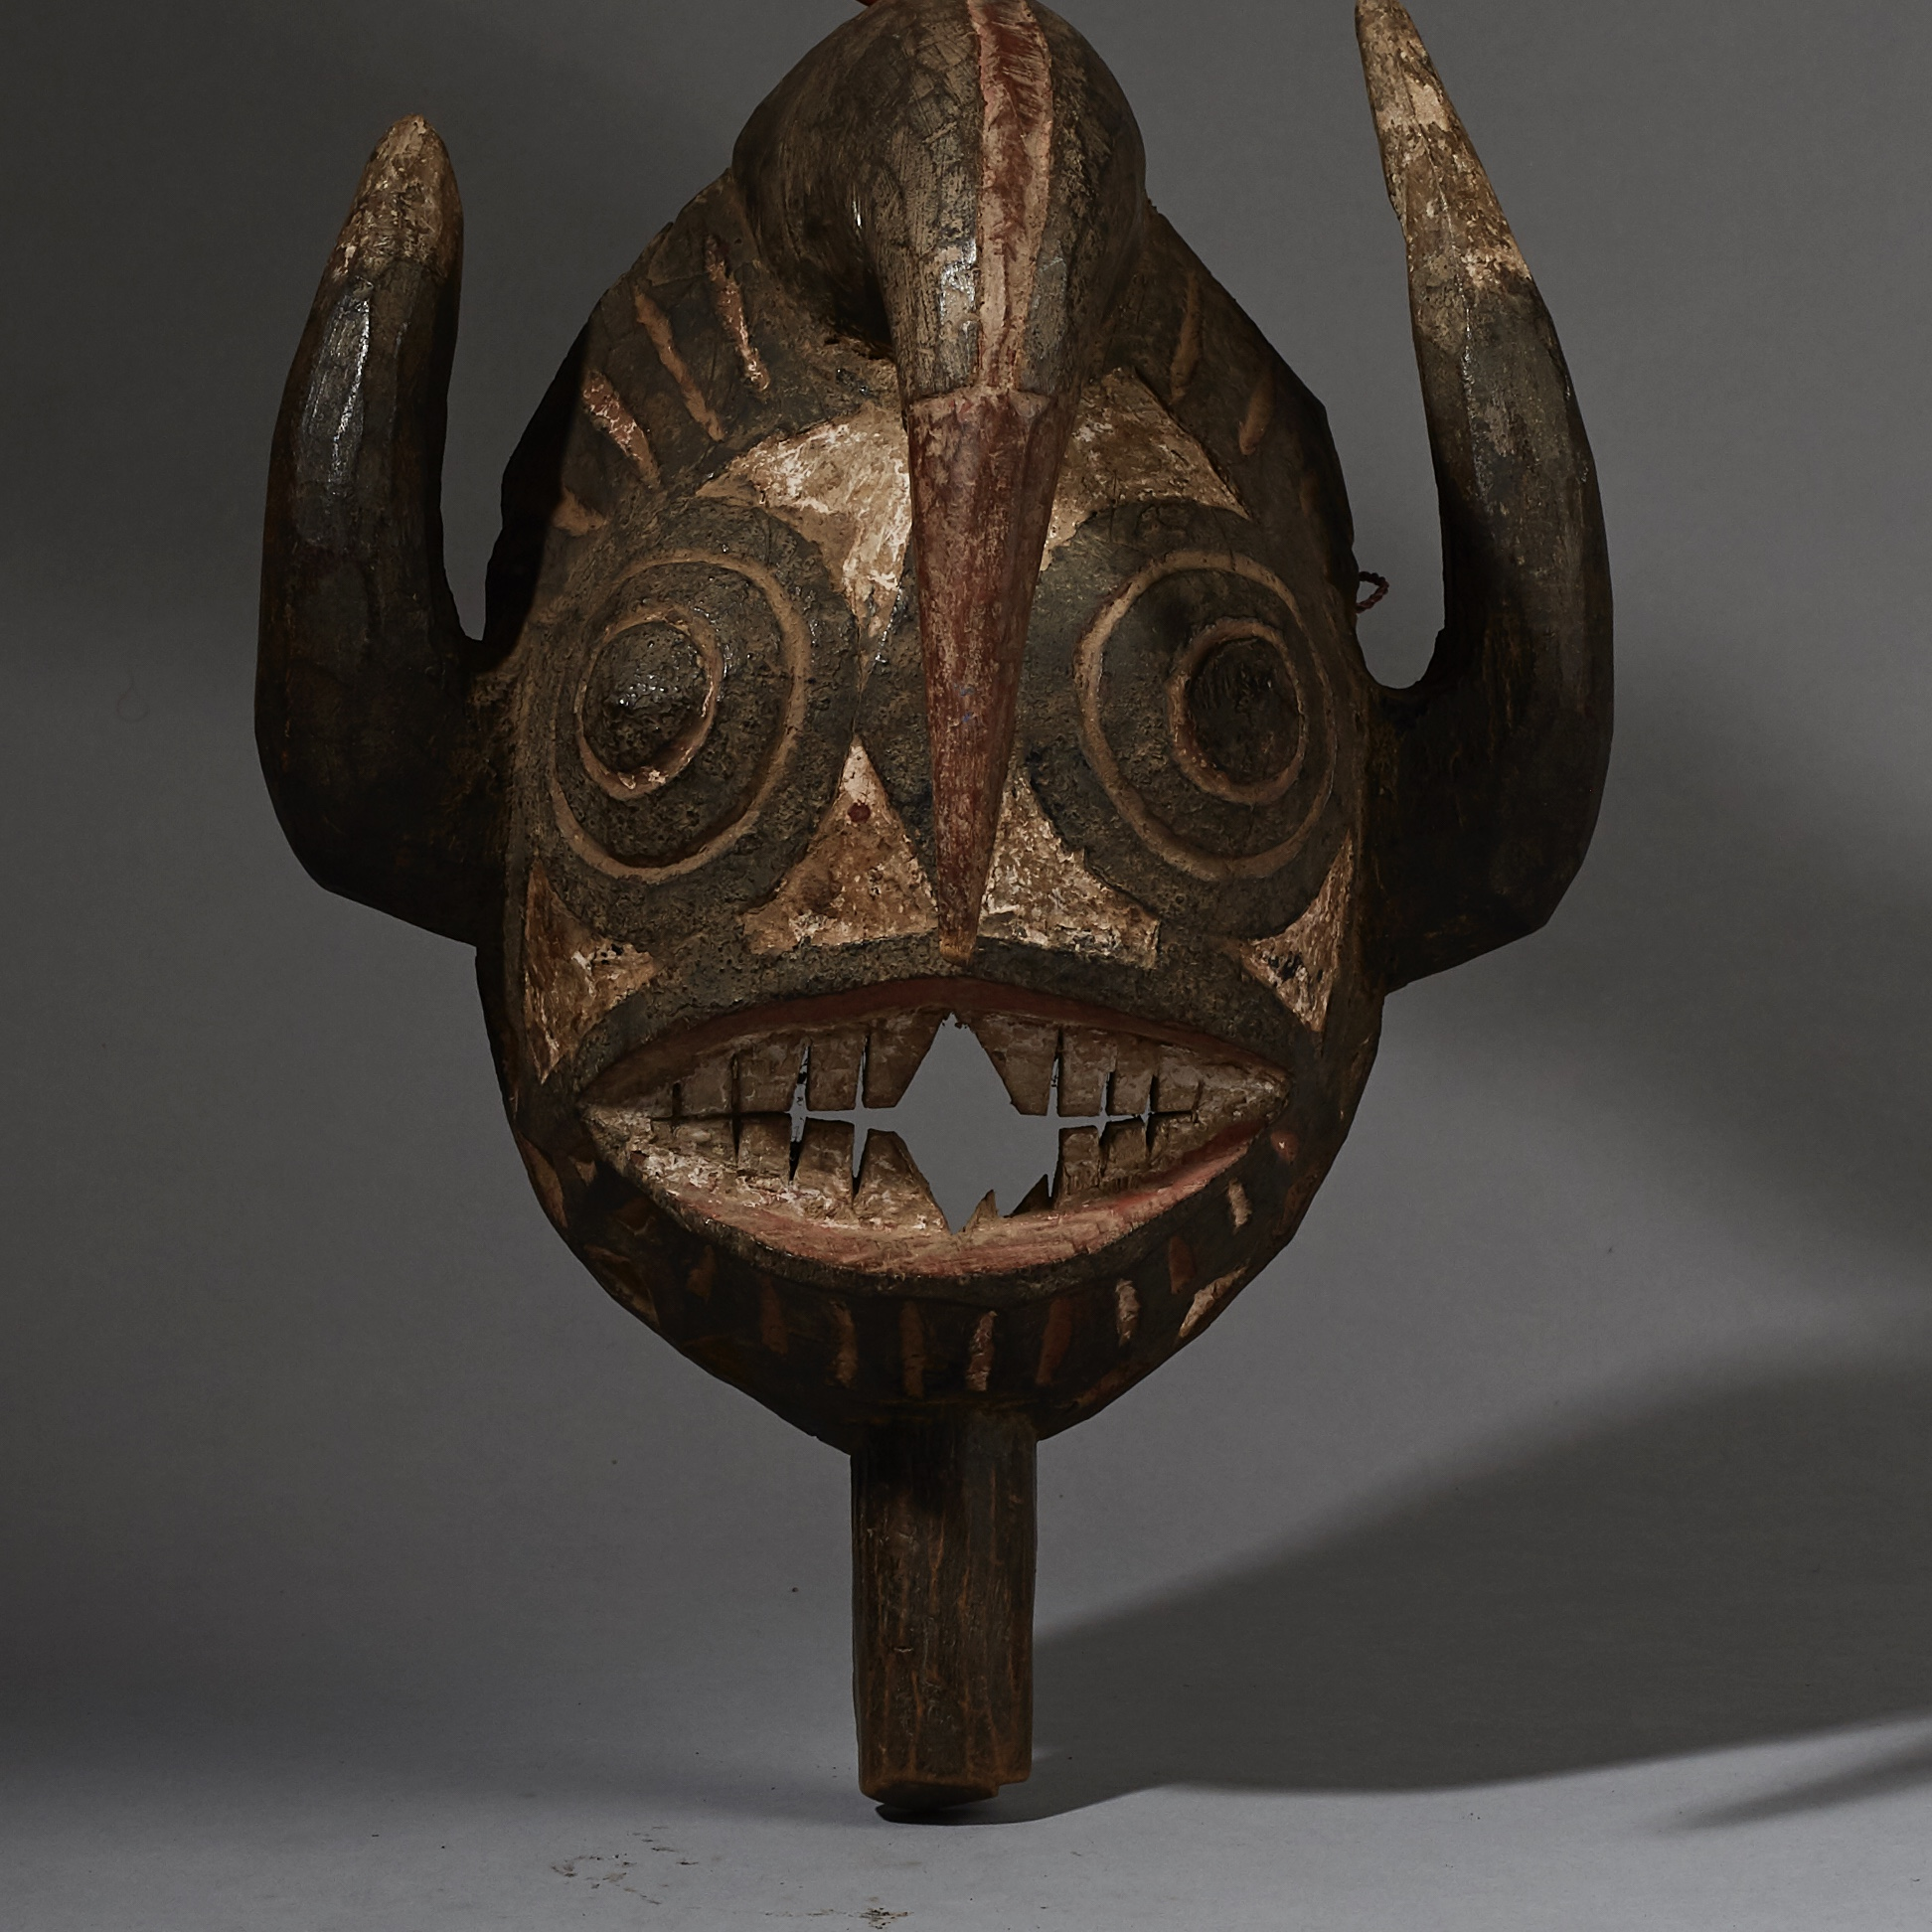 A 3 HORNED ANIMAL MASK FROM THE MOSSI TRIBE OF BURKINA FASO( No 2618 )